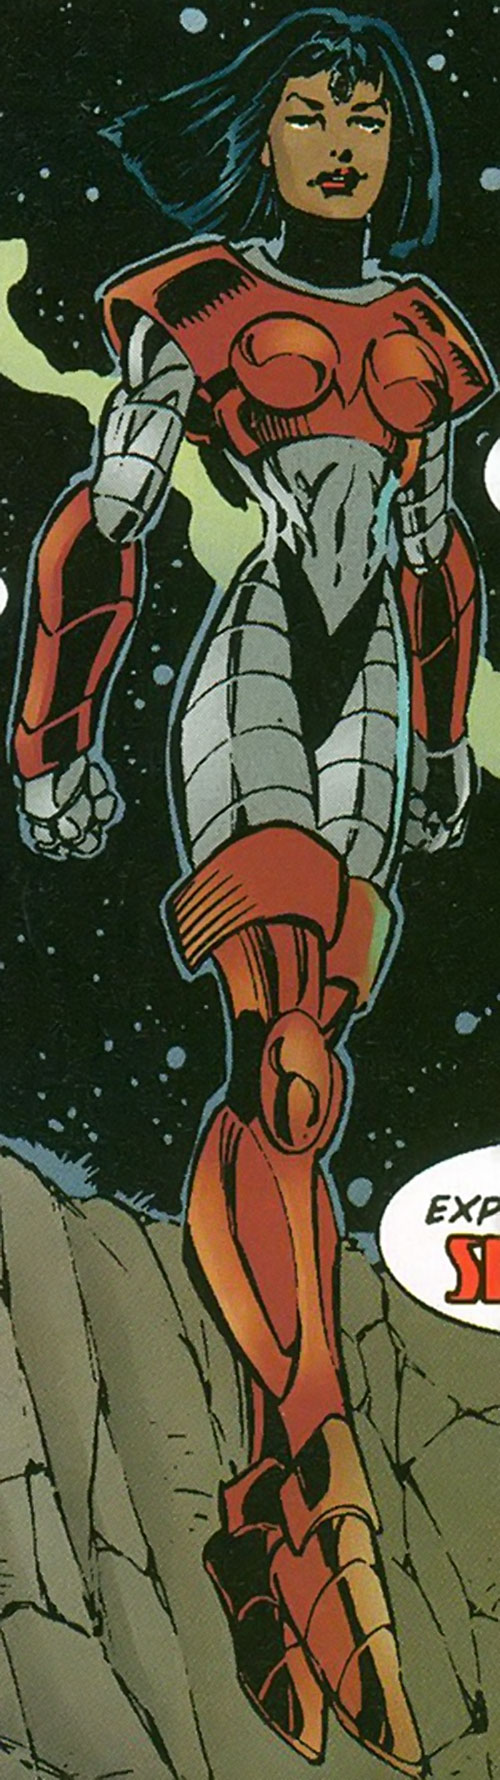 Snapshot (Sovereign 7 enemy) (DC Comics) hovering and smiling